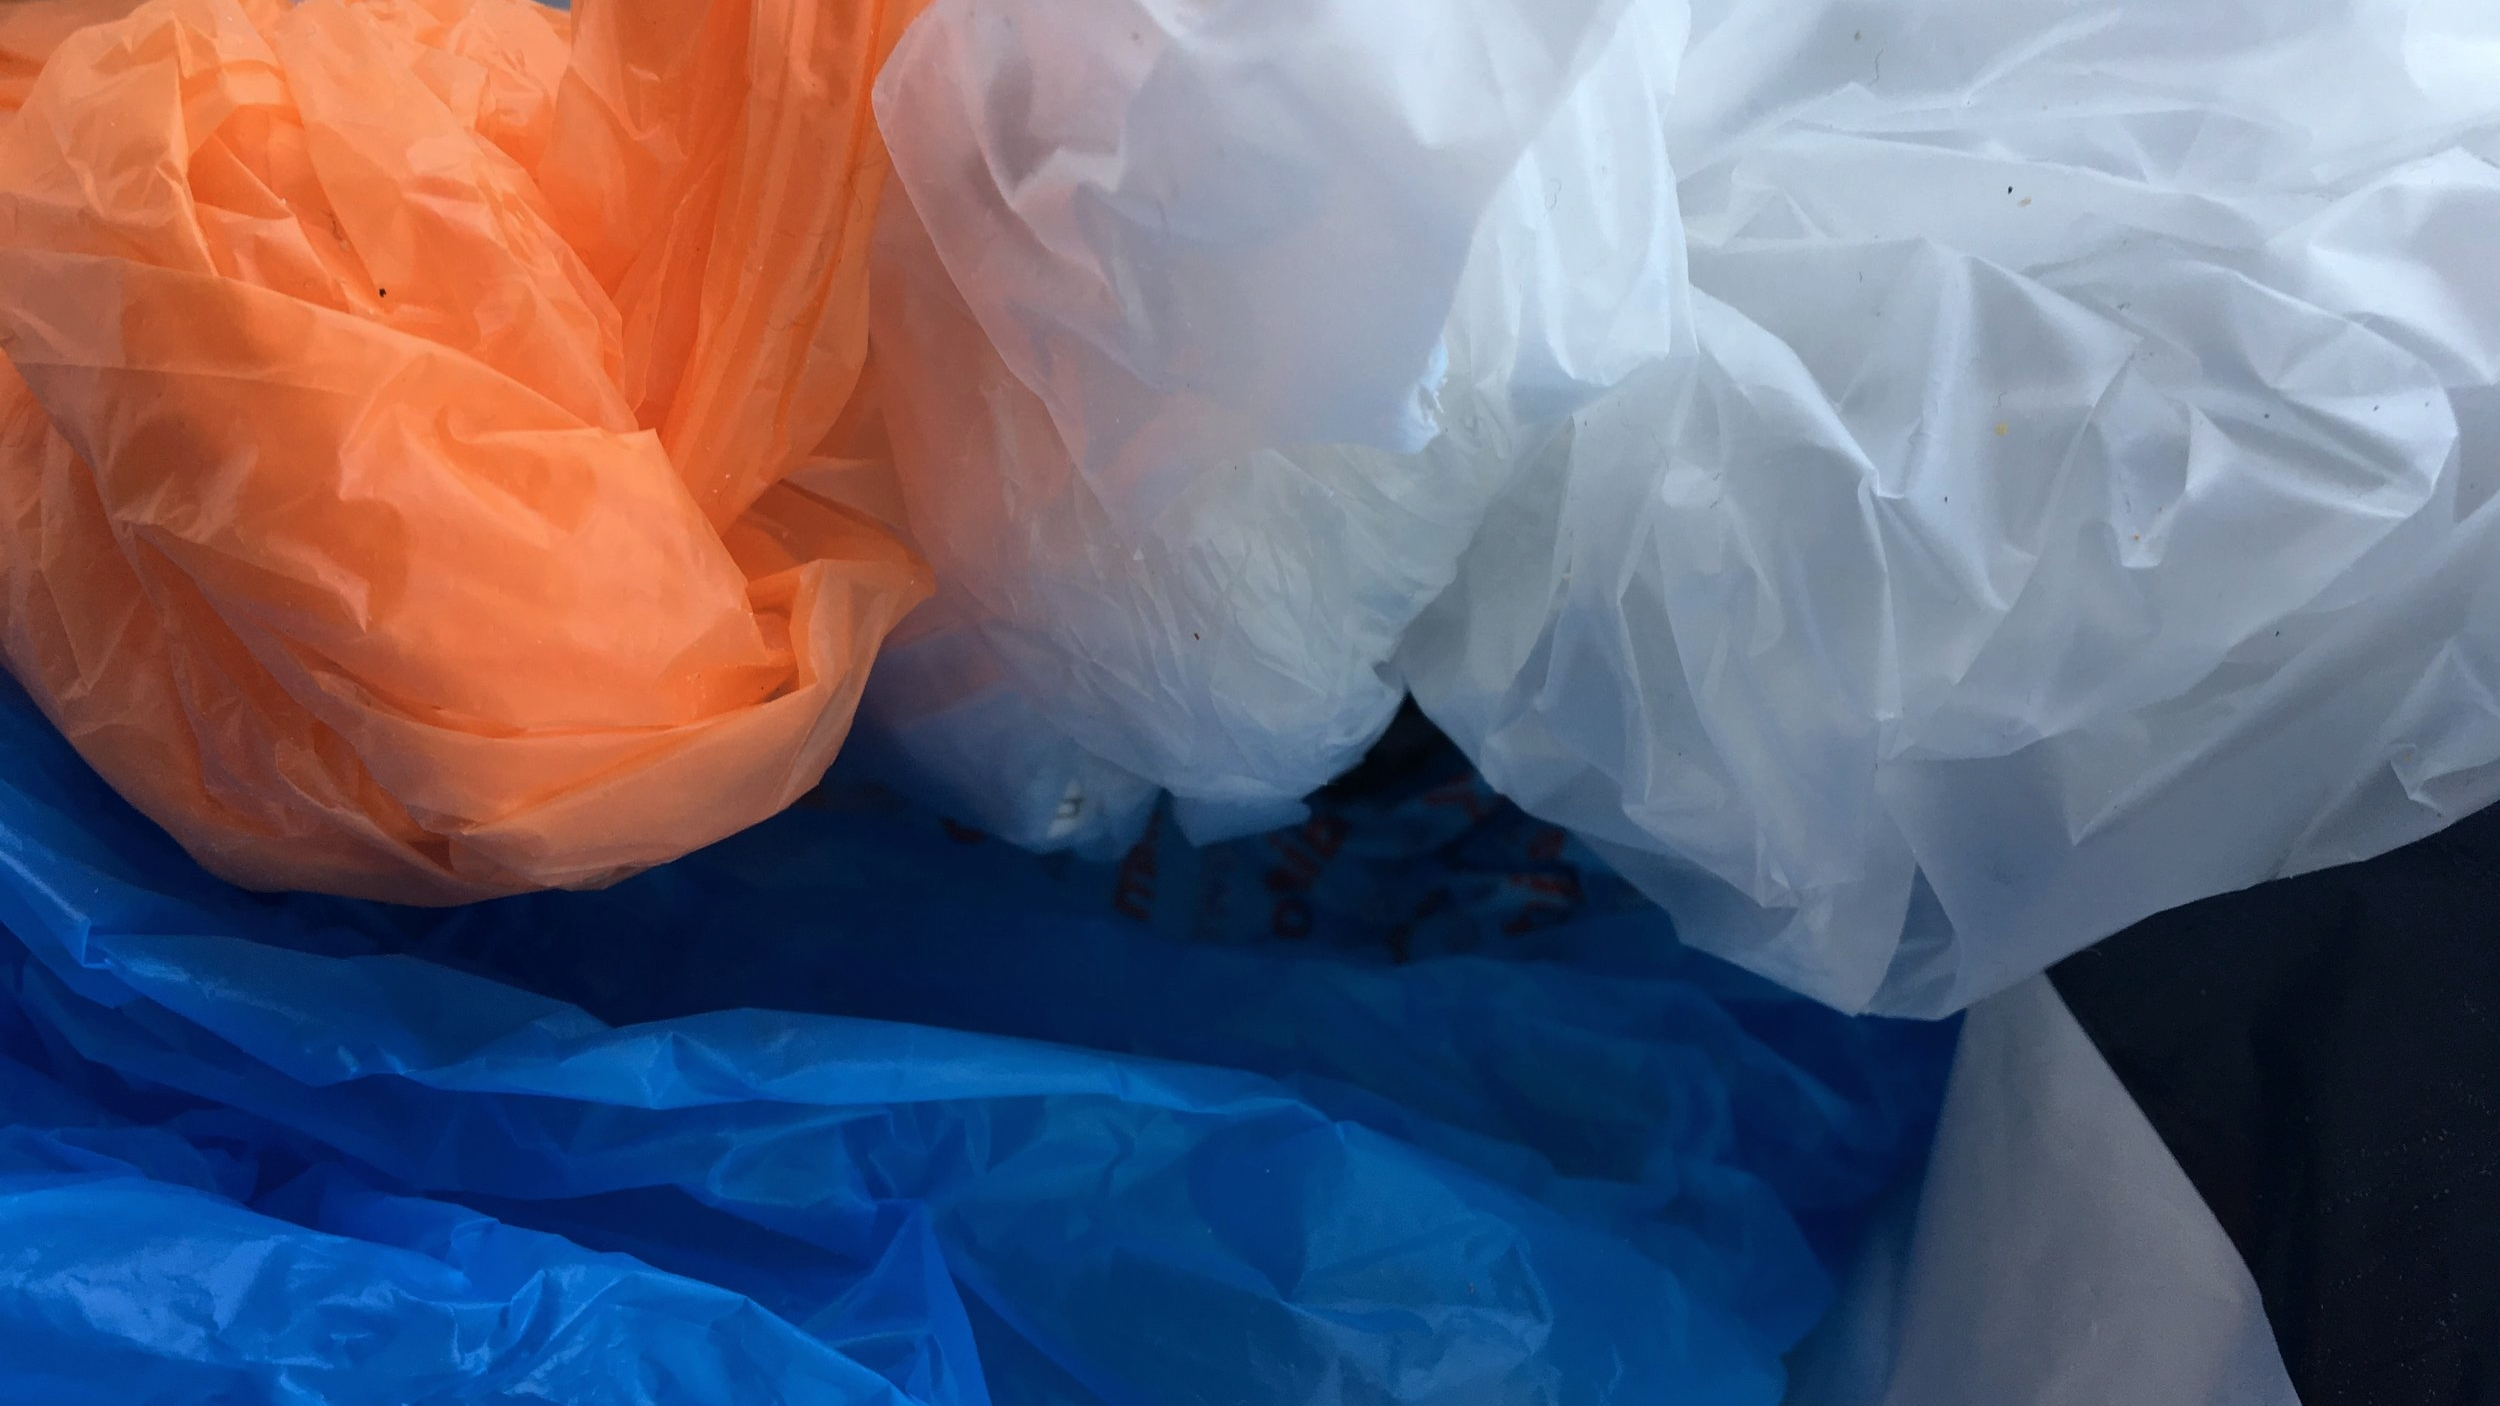 What happens to the plastics? - We bring the plastics back to local recyclers as well as engage with universities on pushing for innovation in creating products from recycled materials.